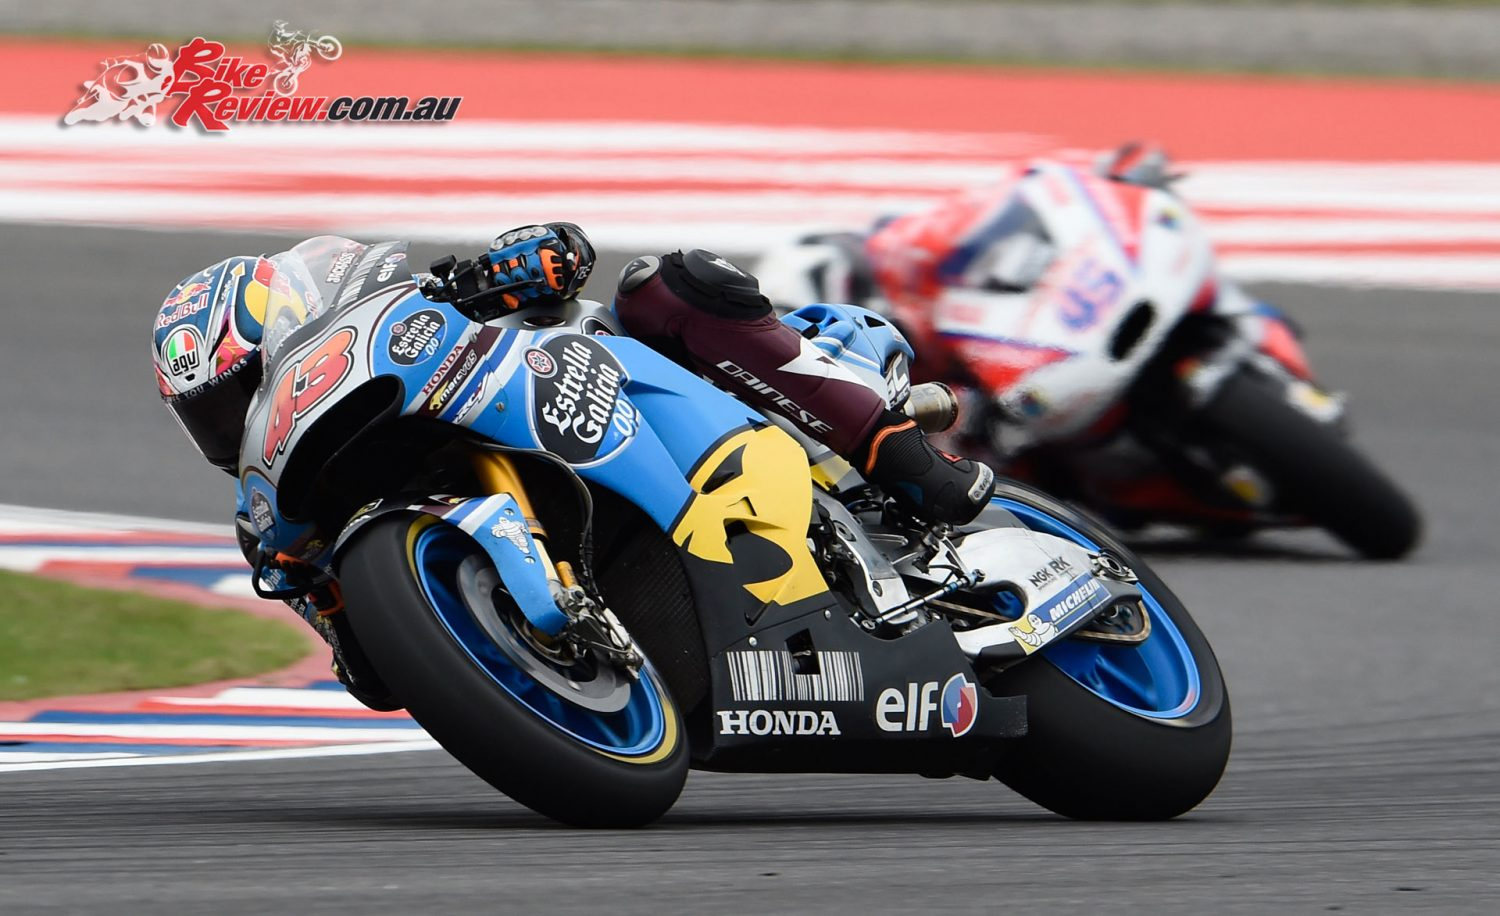 MotoGP heads to Circuit of the Americas in Texas - Bike Review